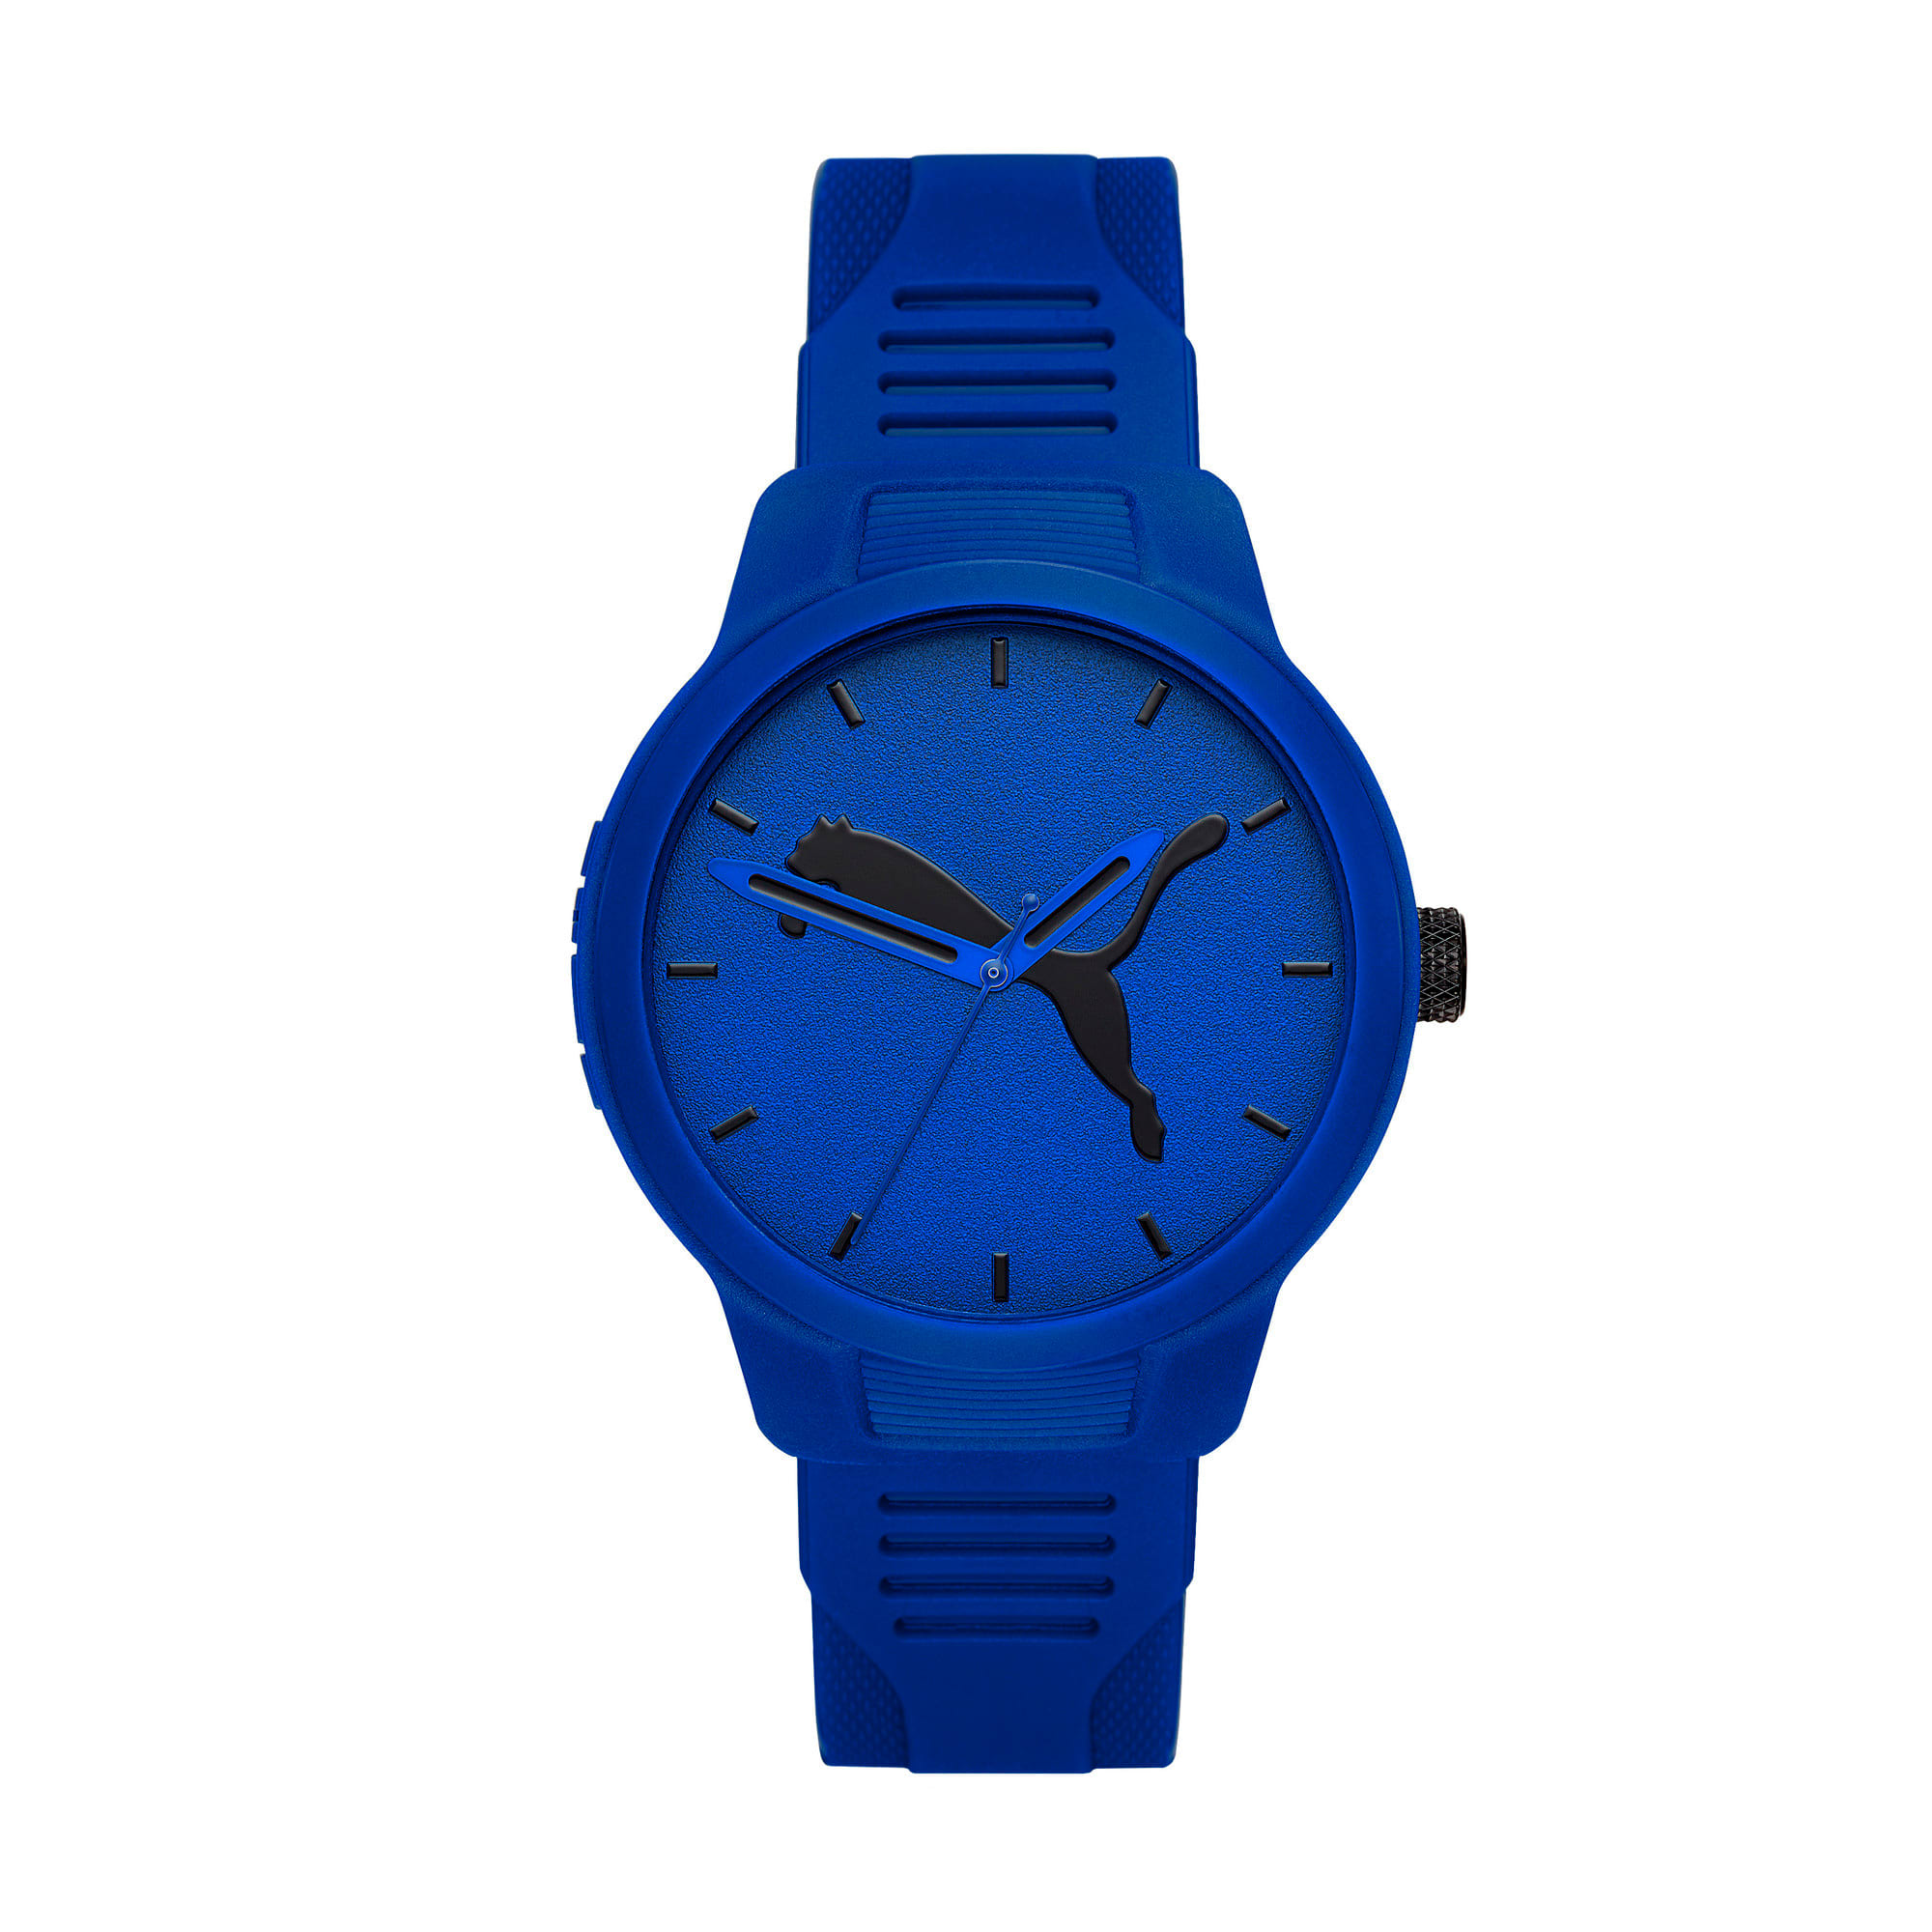 Thumbnail 1 of Reset v2 Watch, Blue/Blue, medium